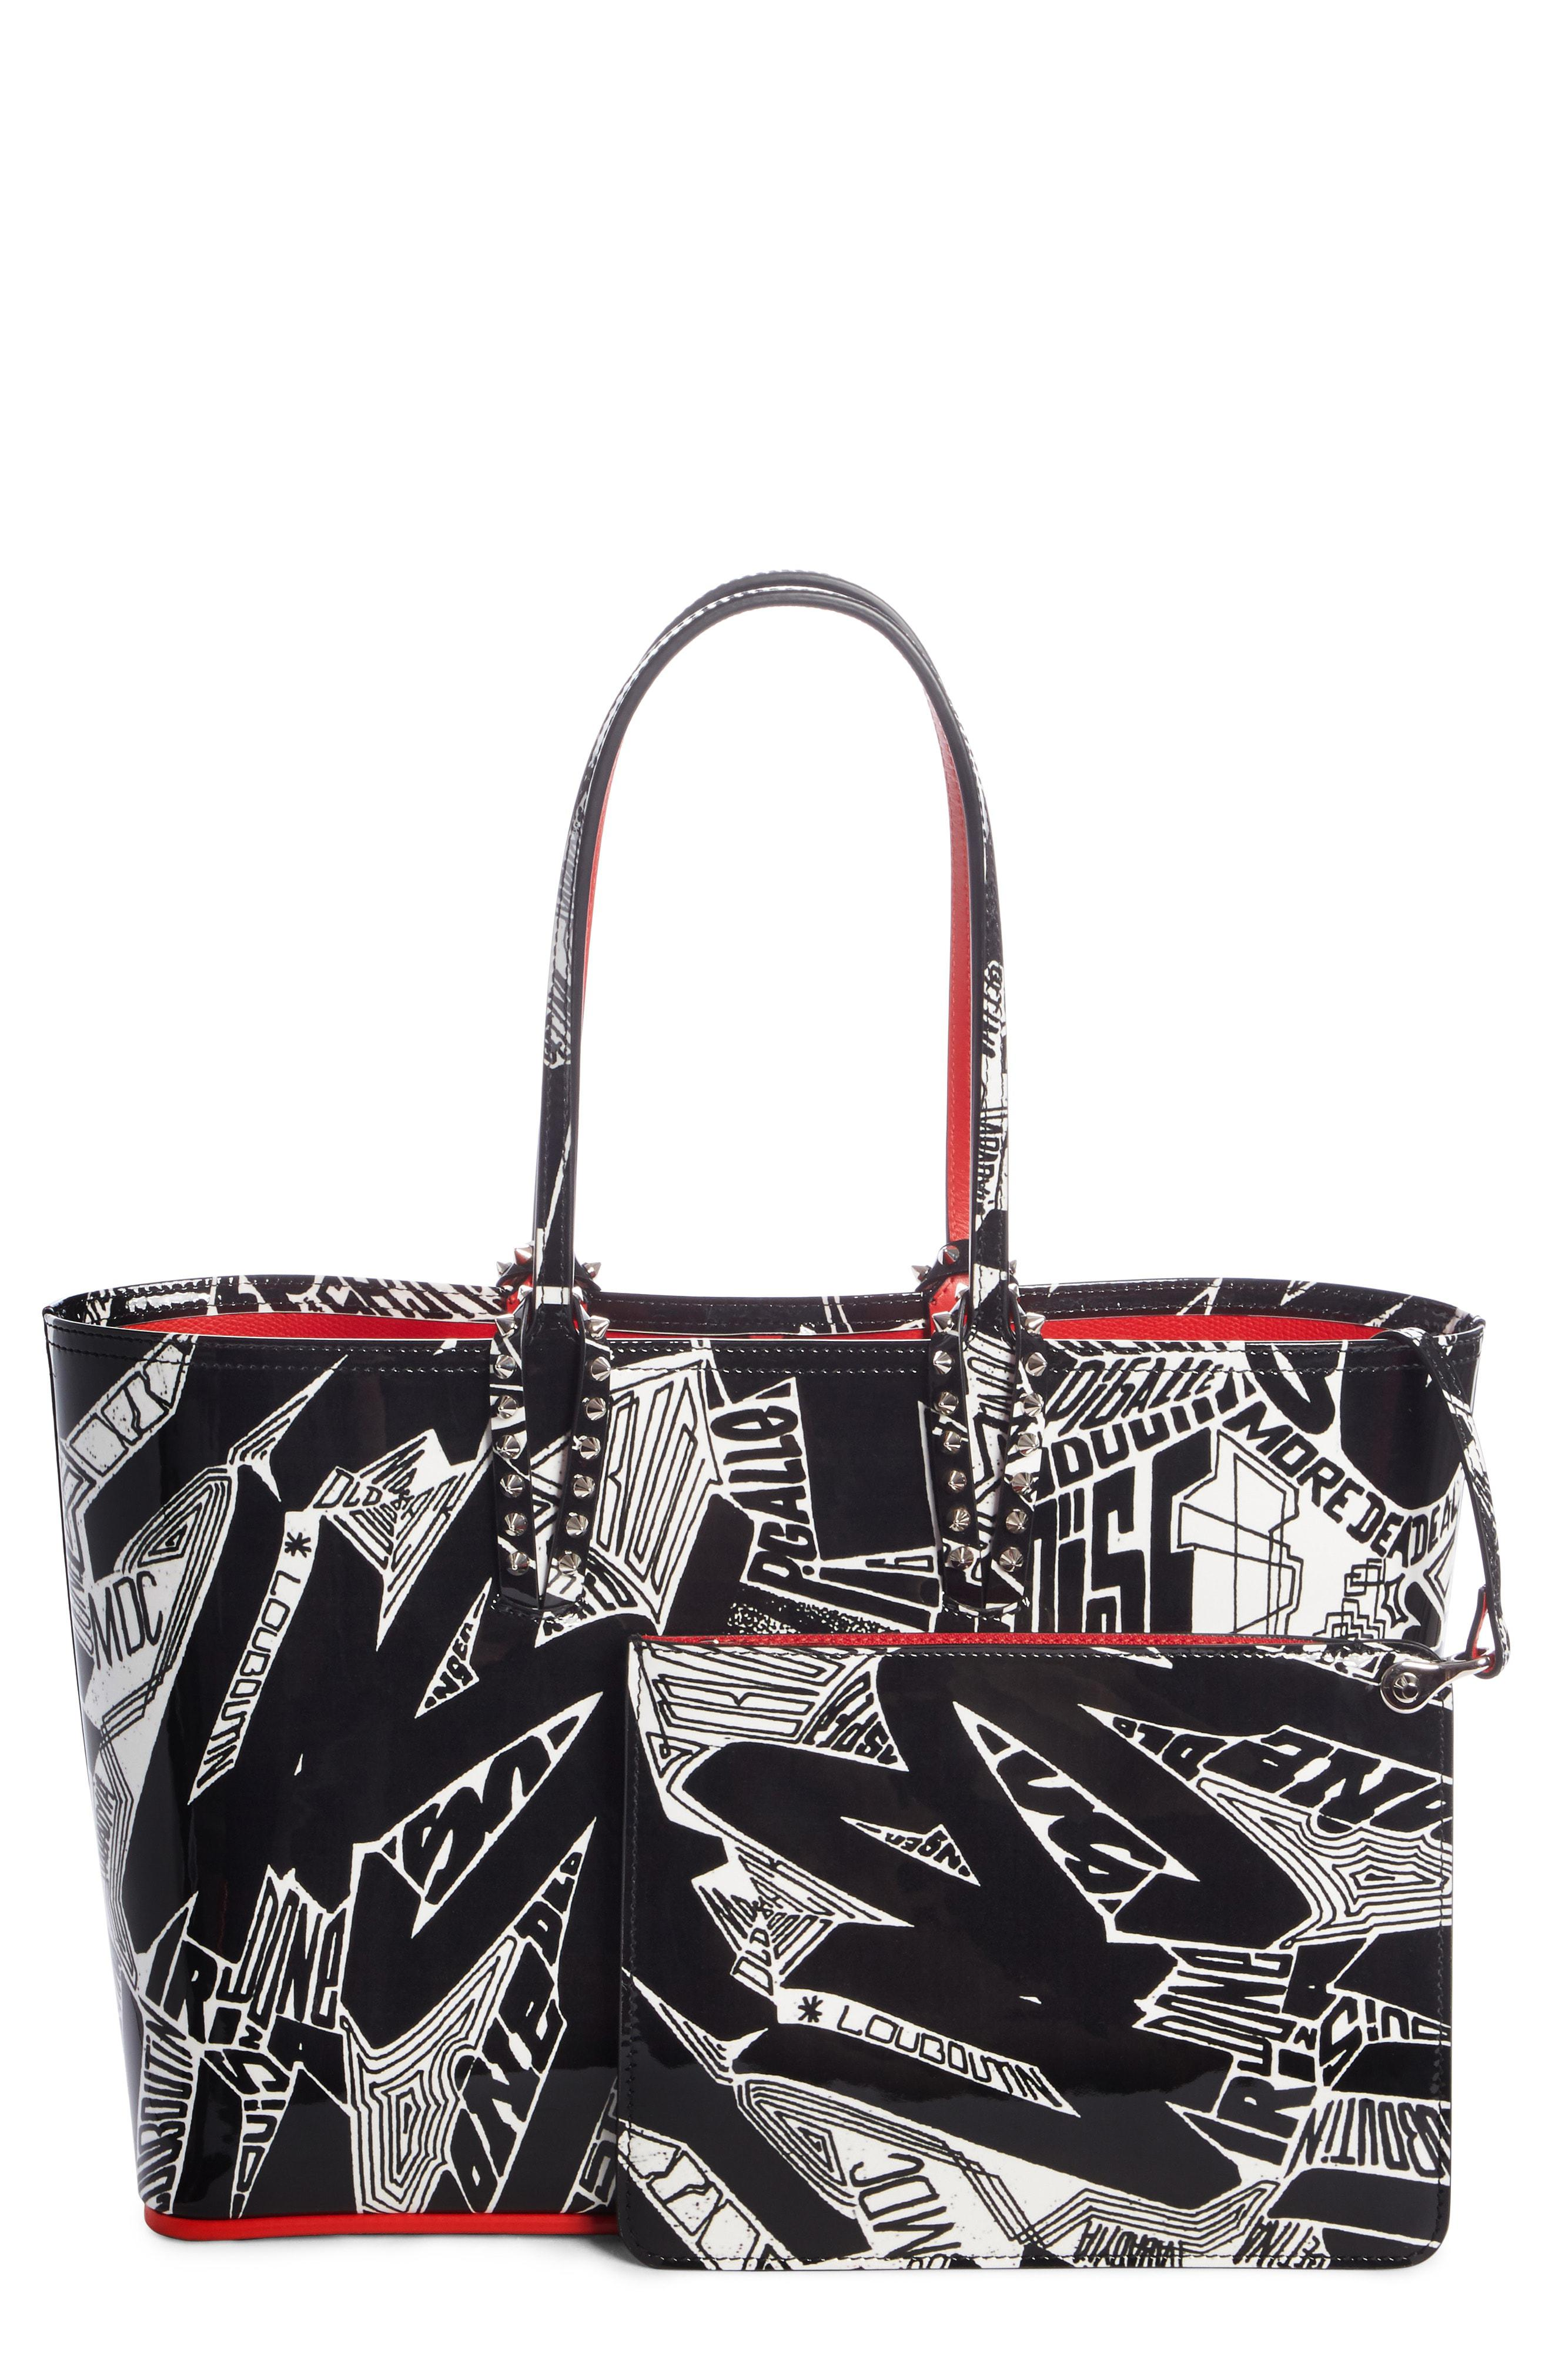 1d42a63df5e Christian Louboutin Black Small Cabata Nicograf Patent Leather Tote